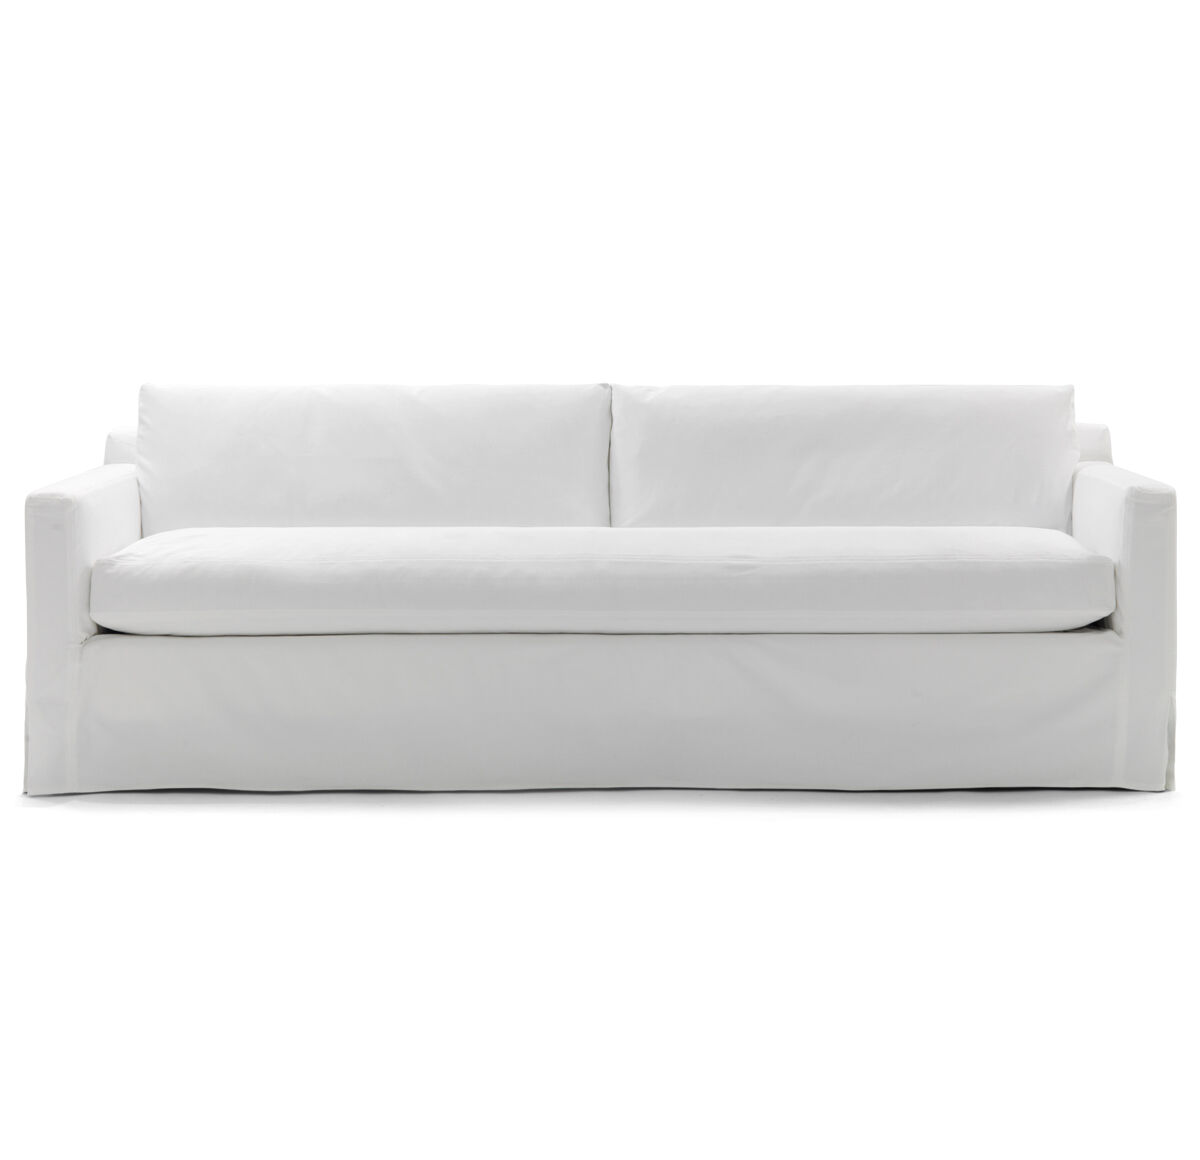 hunter long slipcovered sofa